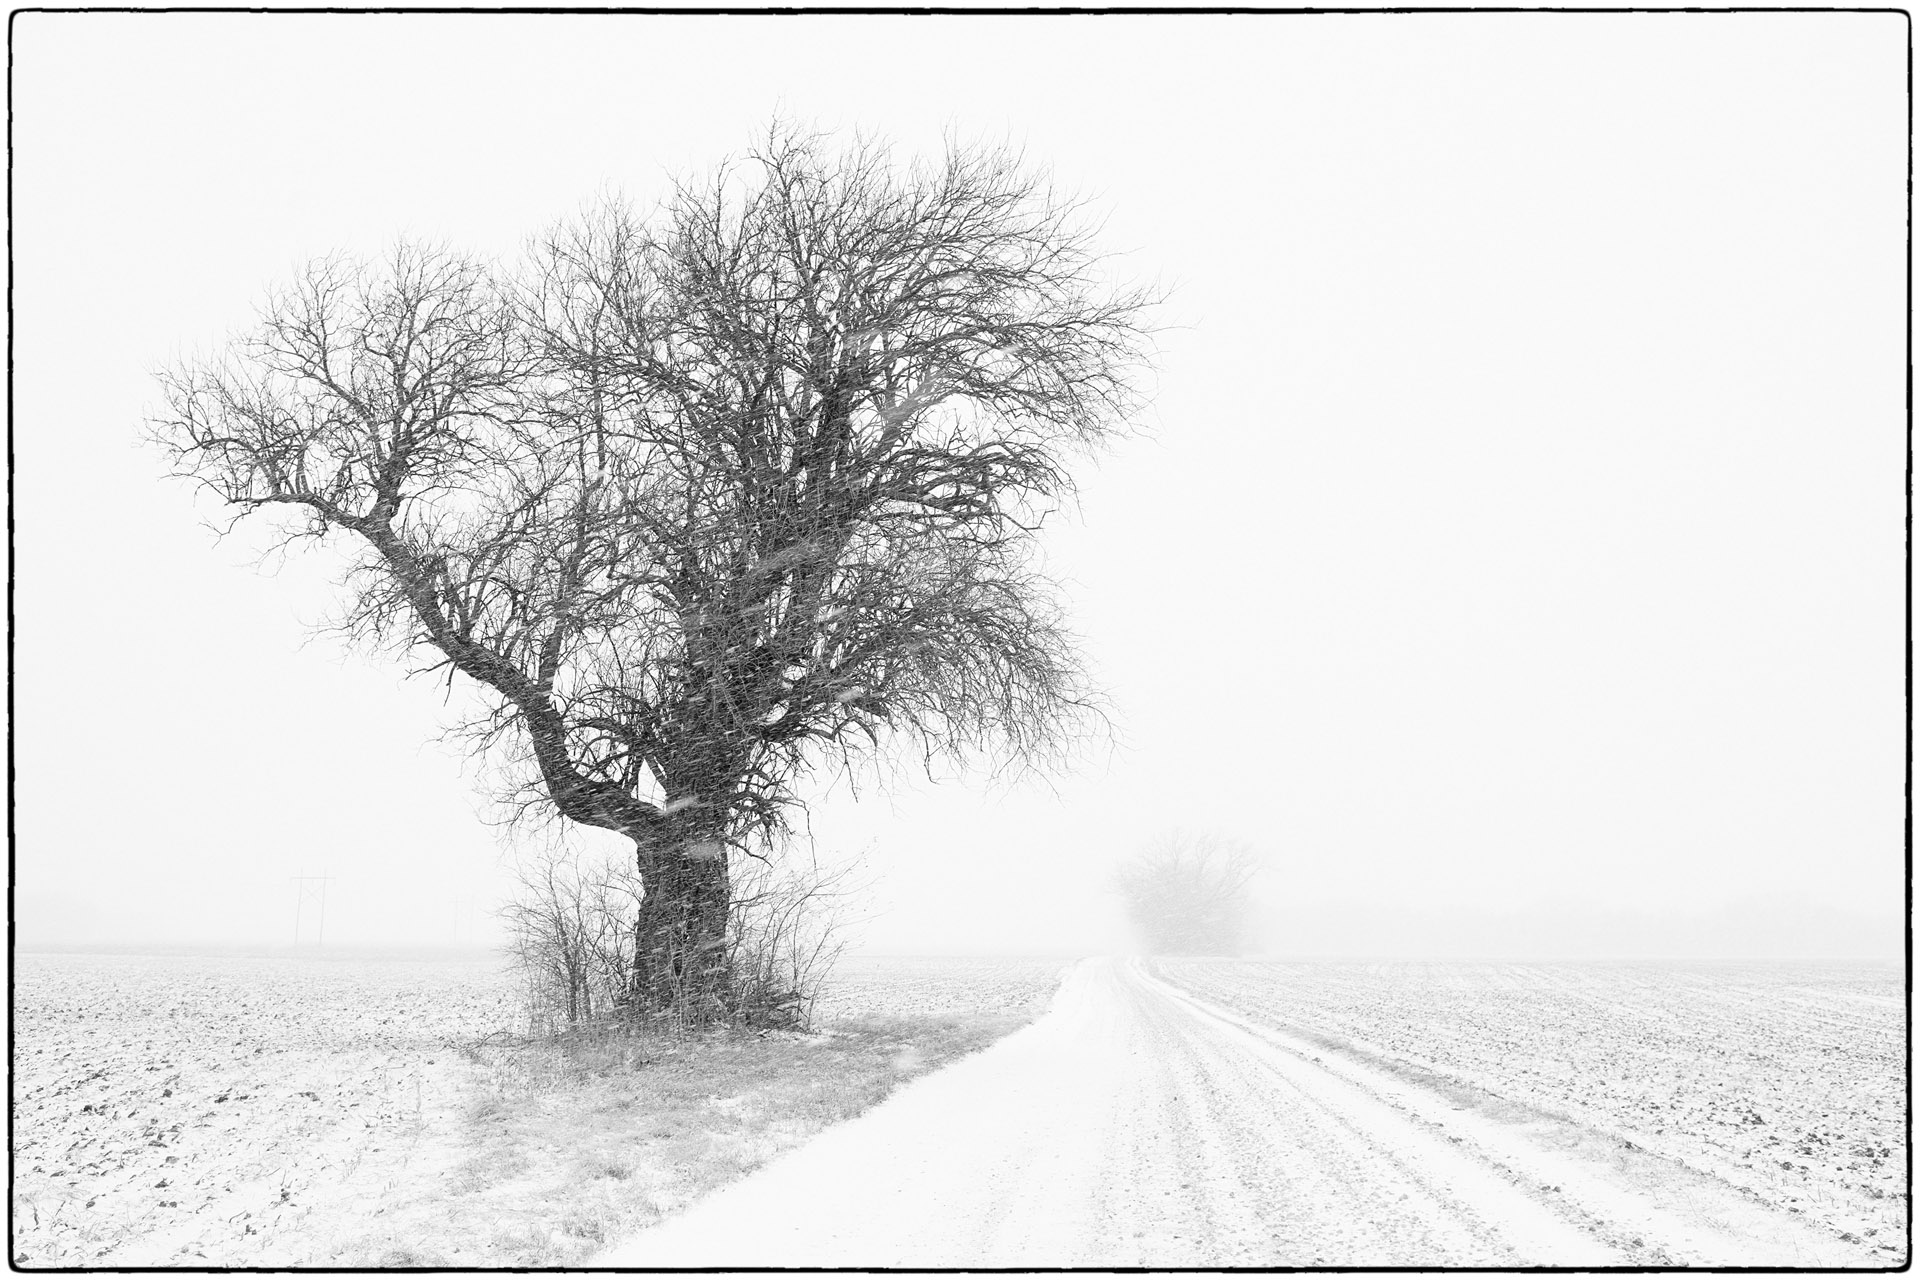 Winter Tree and Country Road